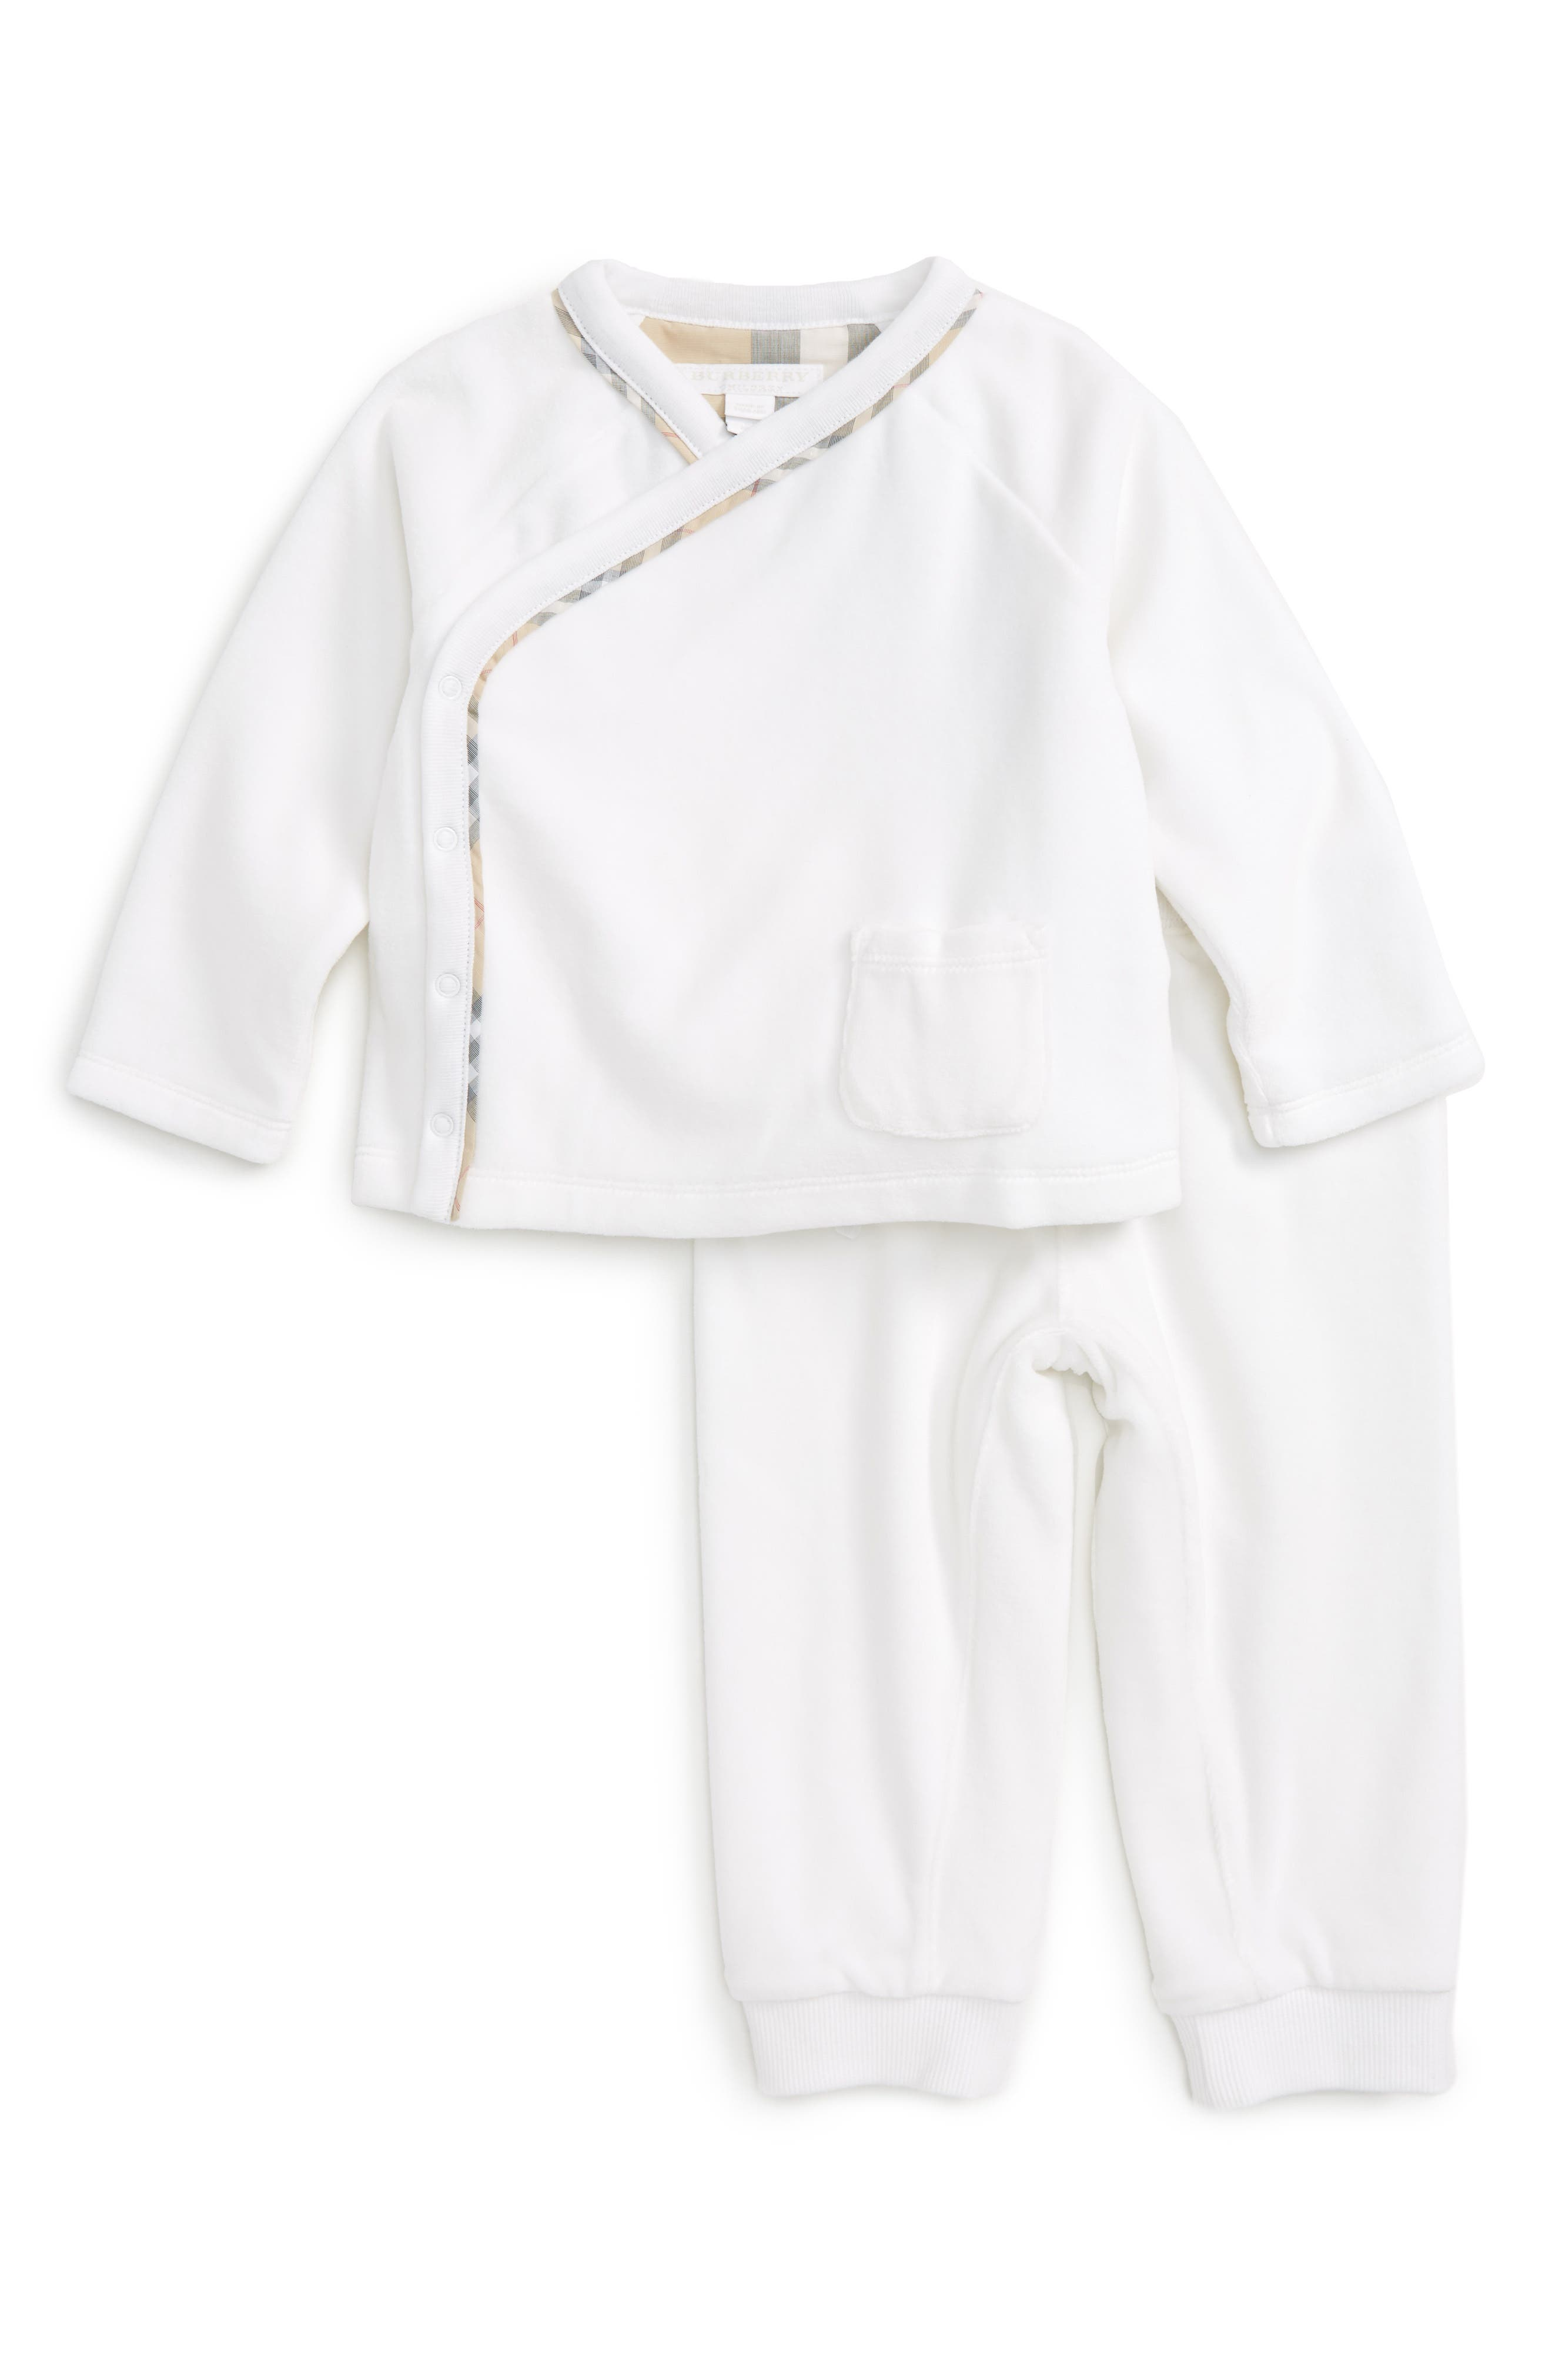 Alternate Image 1 Selected - Burberry Remy Shirt & Pants Set (Baby)